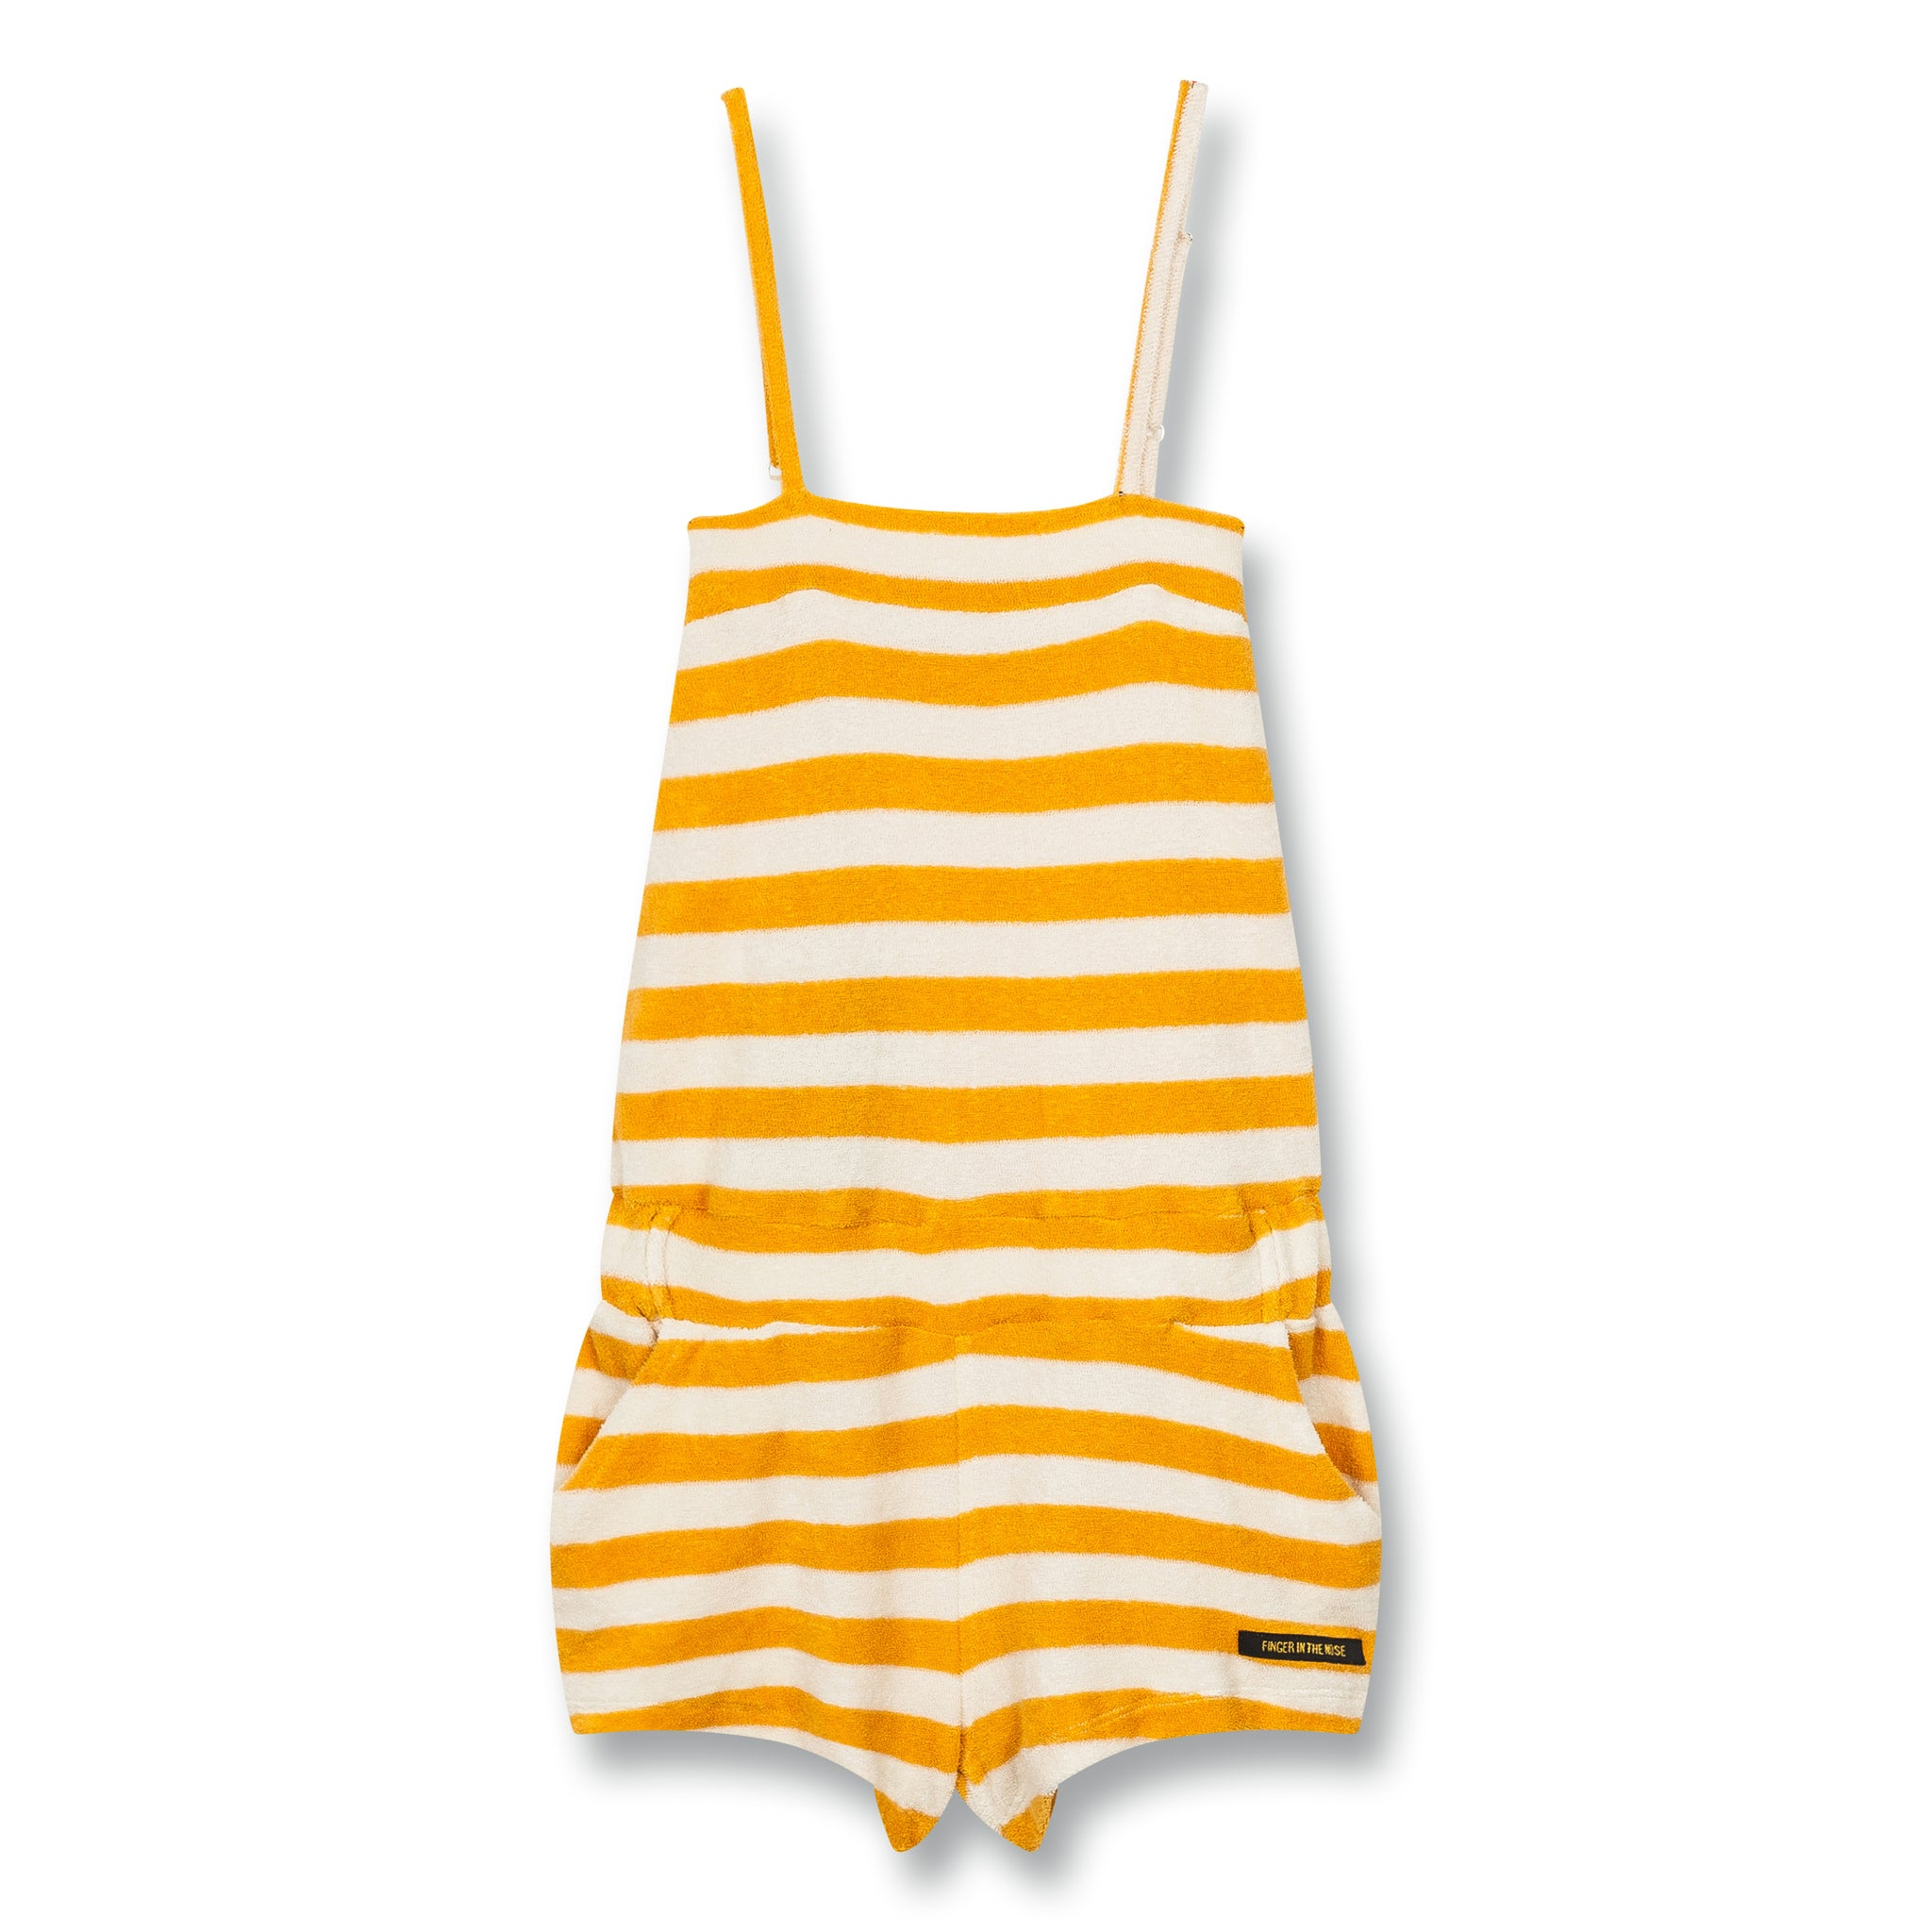 LIV Mandarin Stripes - Short Overall 1